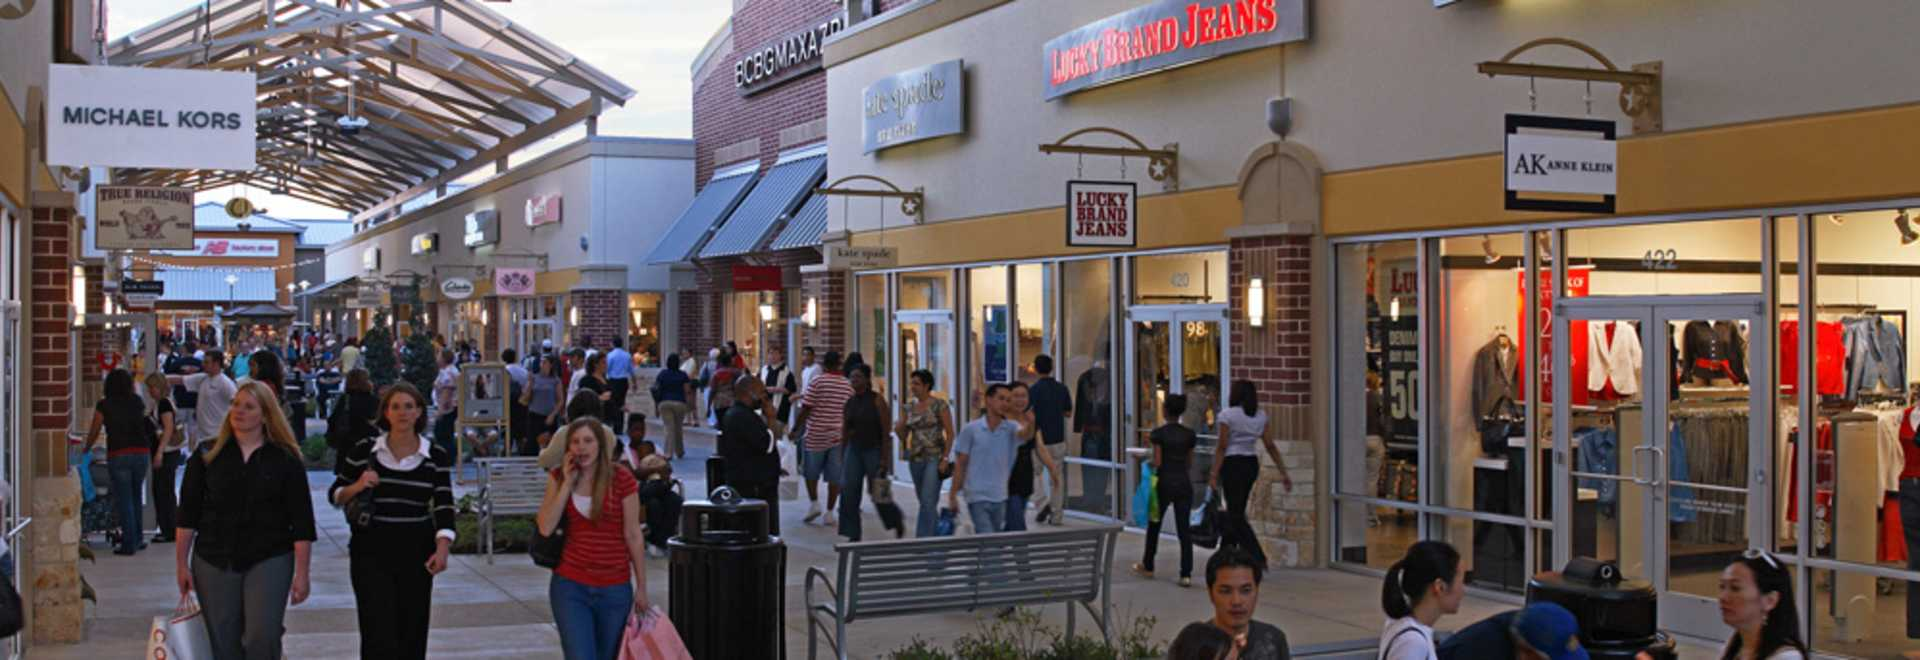 ad949cce870ce Houston Area Shopping Outlets | Malls & Factory Outlets